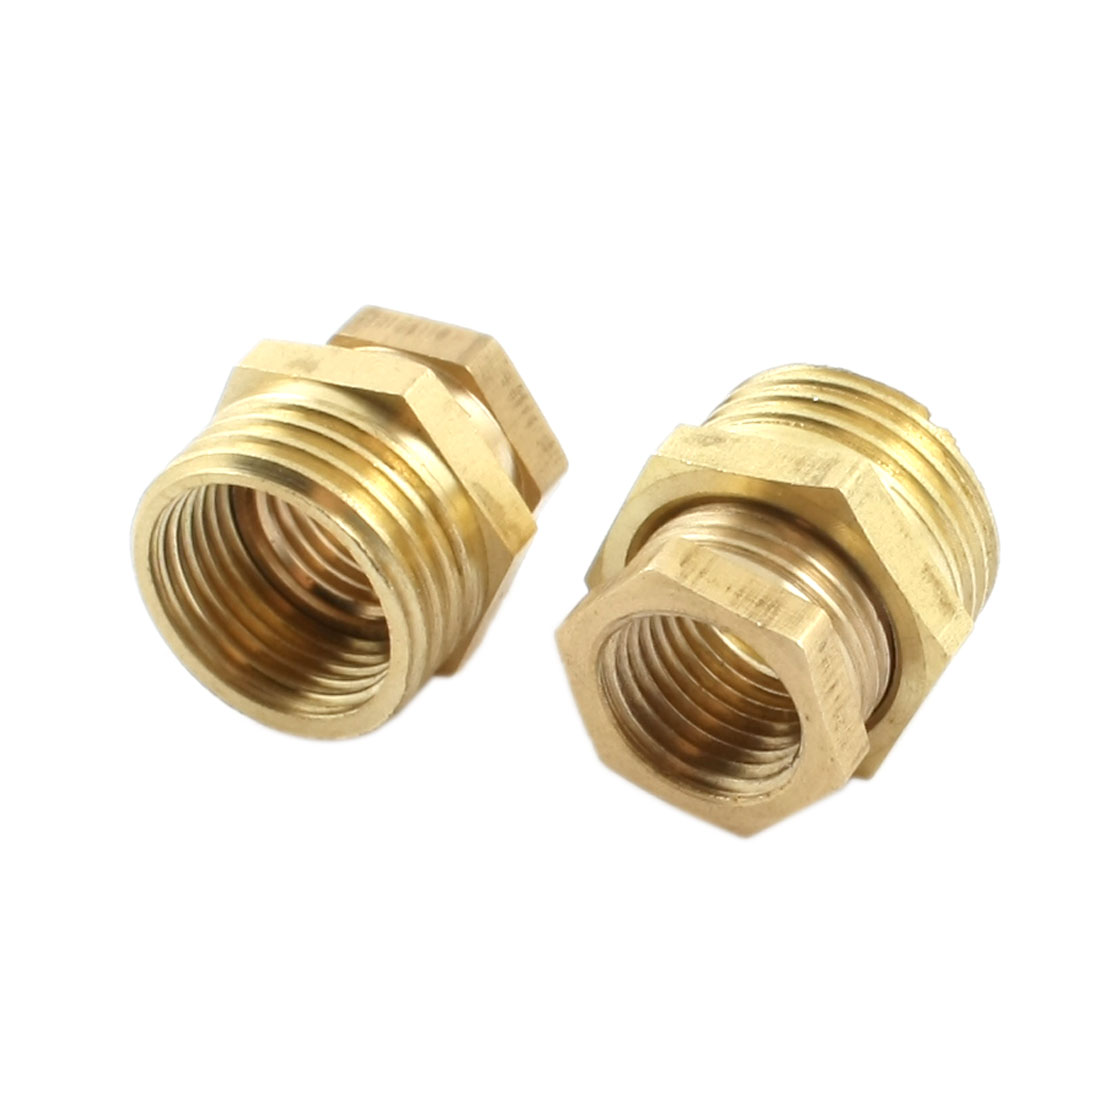 2 Pcs 1/2PT Male x 1/4PT Female Brass Pipe Reducer Hex Bushing Fitting Gold Tone